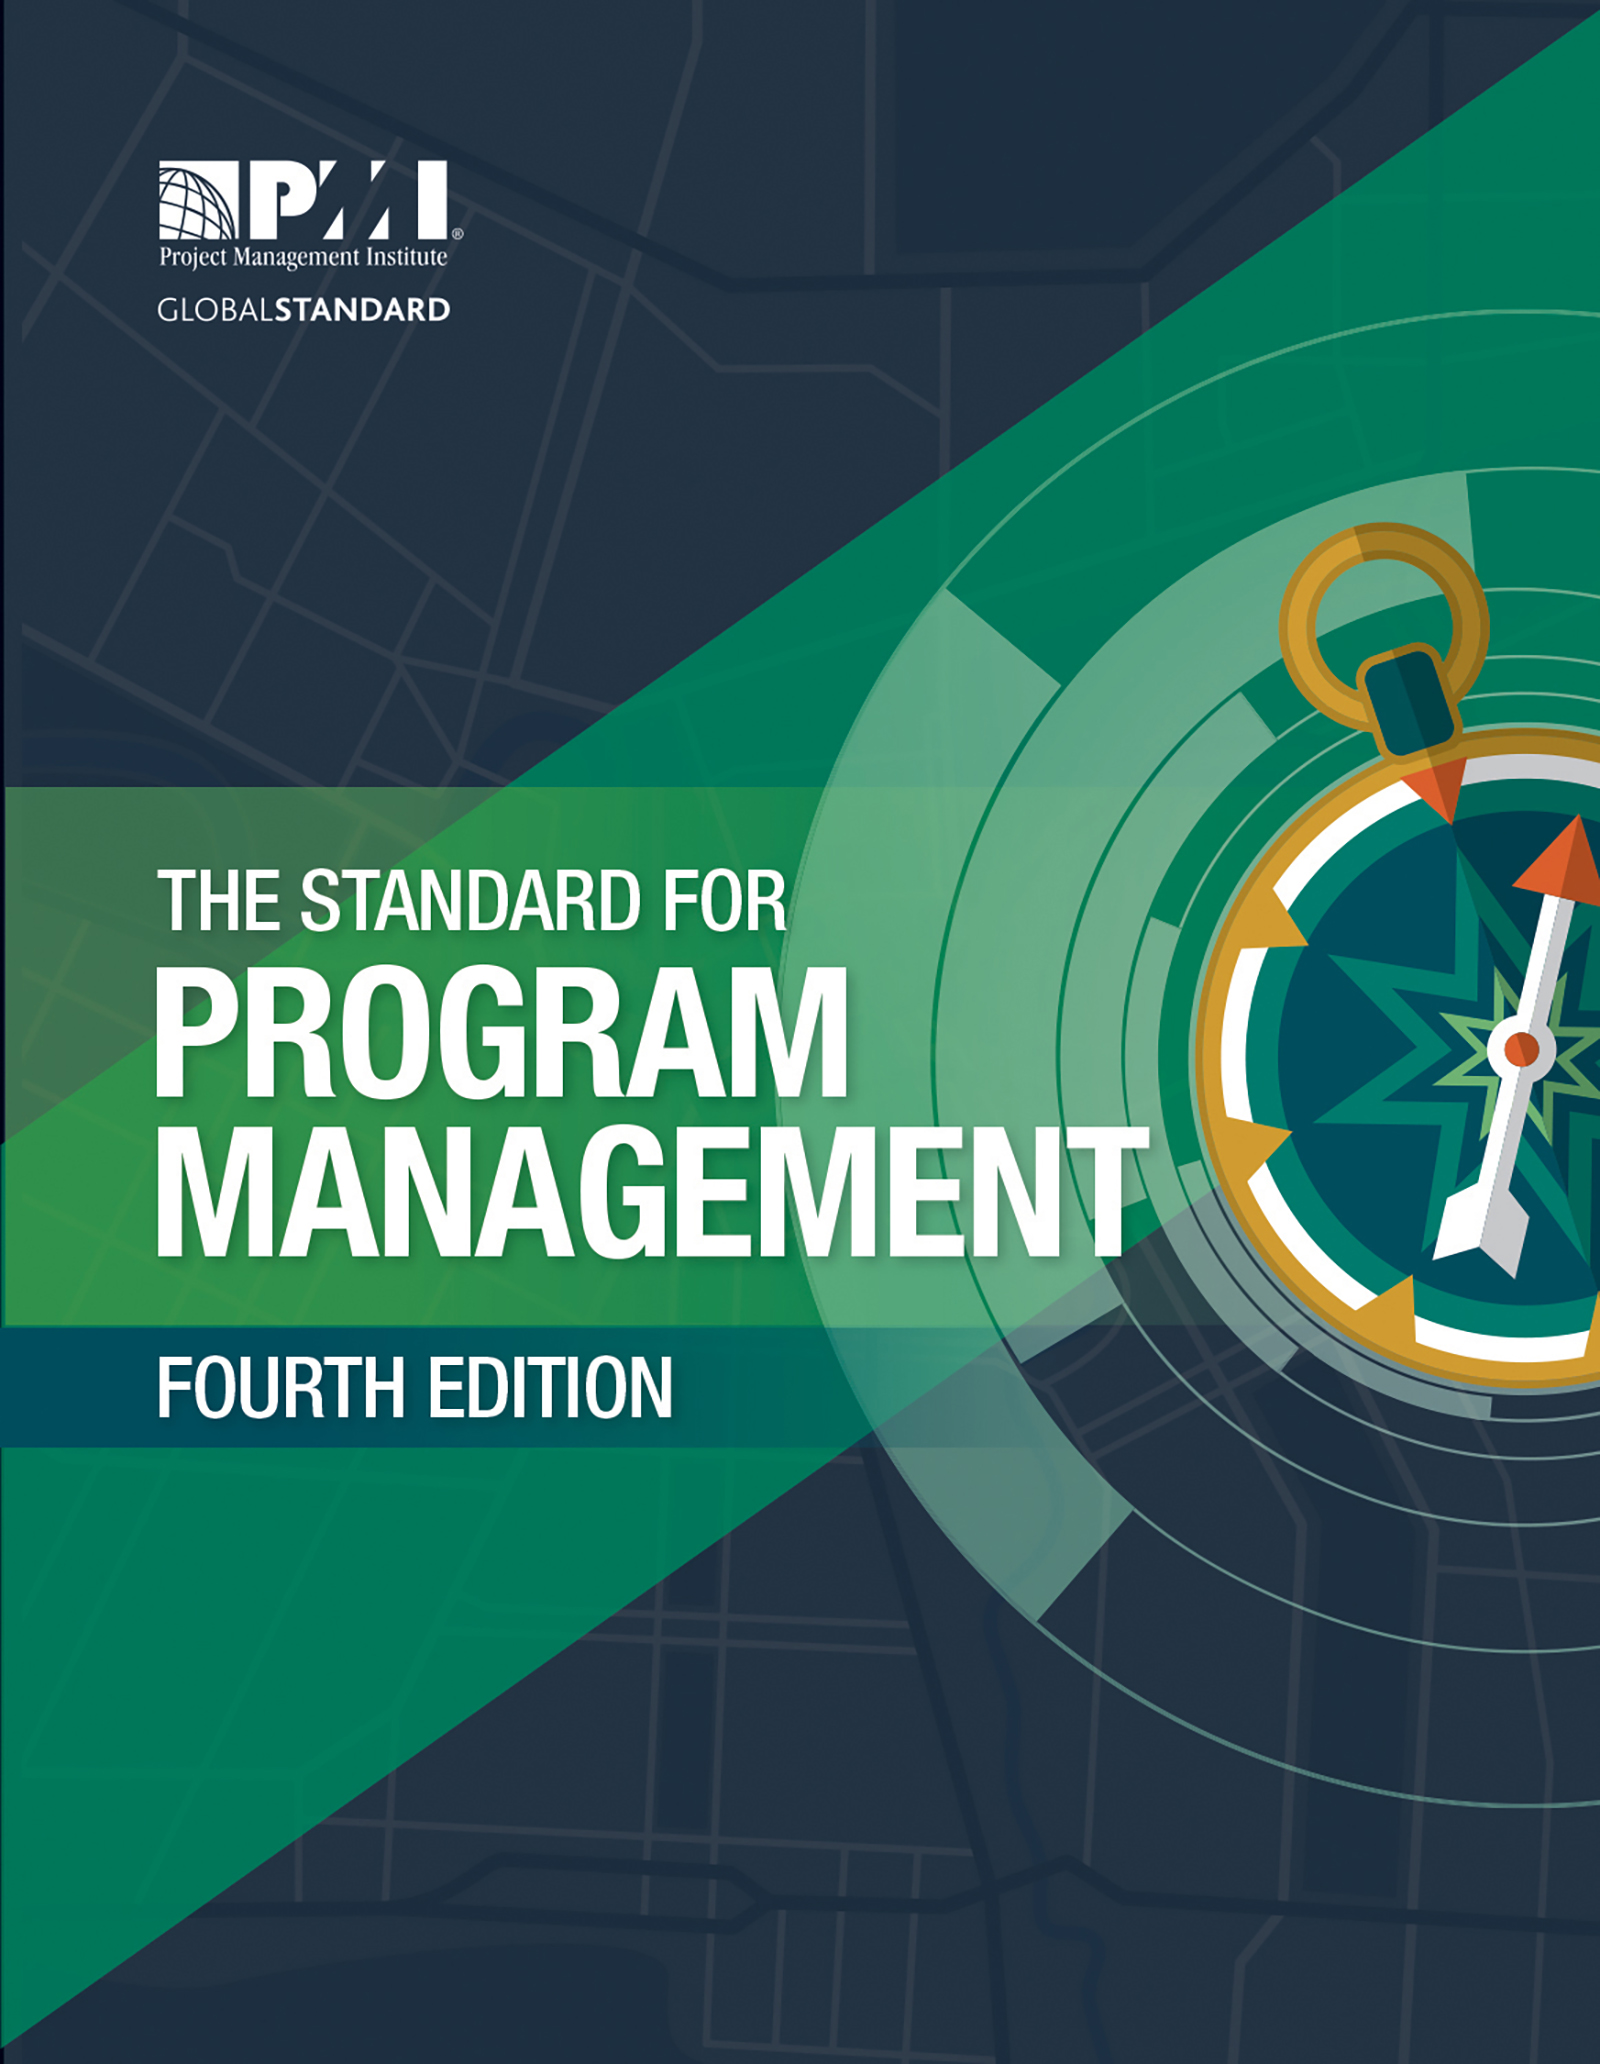 Download Ebook The Standard for Program Management by Project Management Institute Pdf